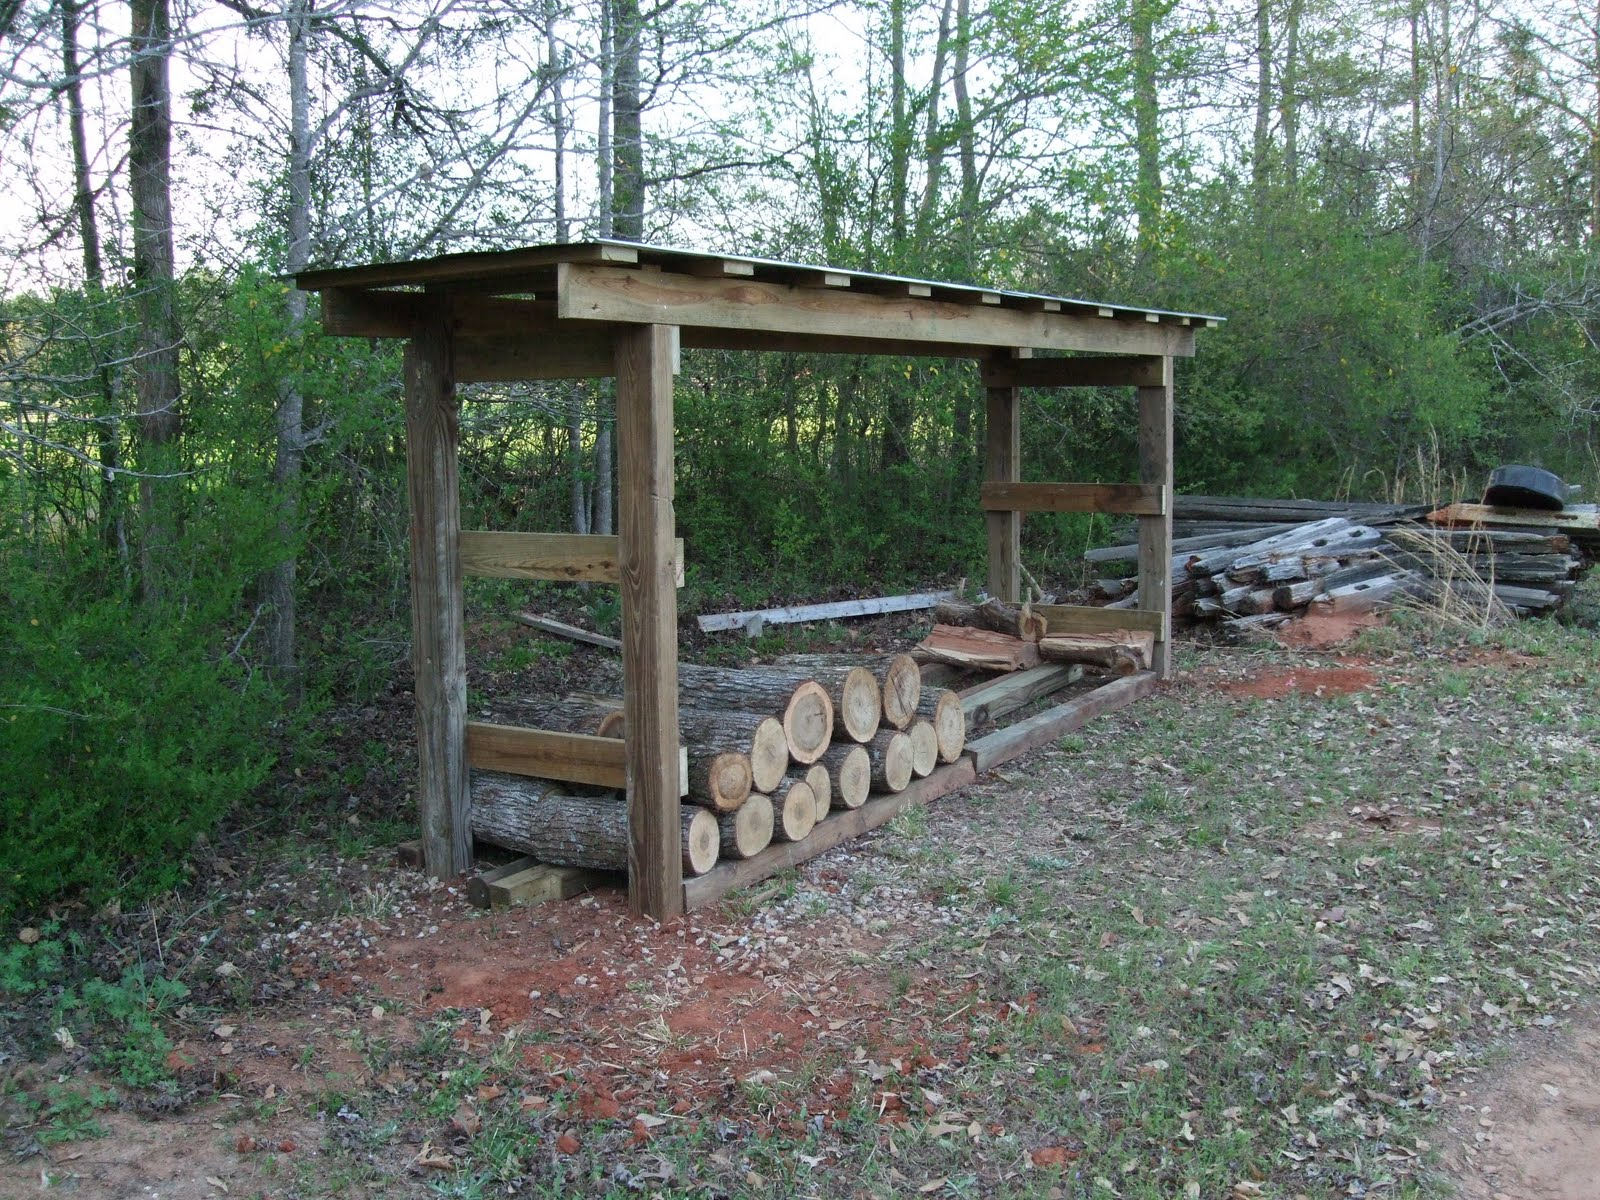 ... Wood Sheds : Why You Need to Build the Best Firewood Sheds You Can